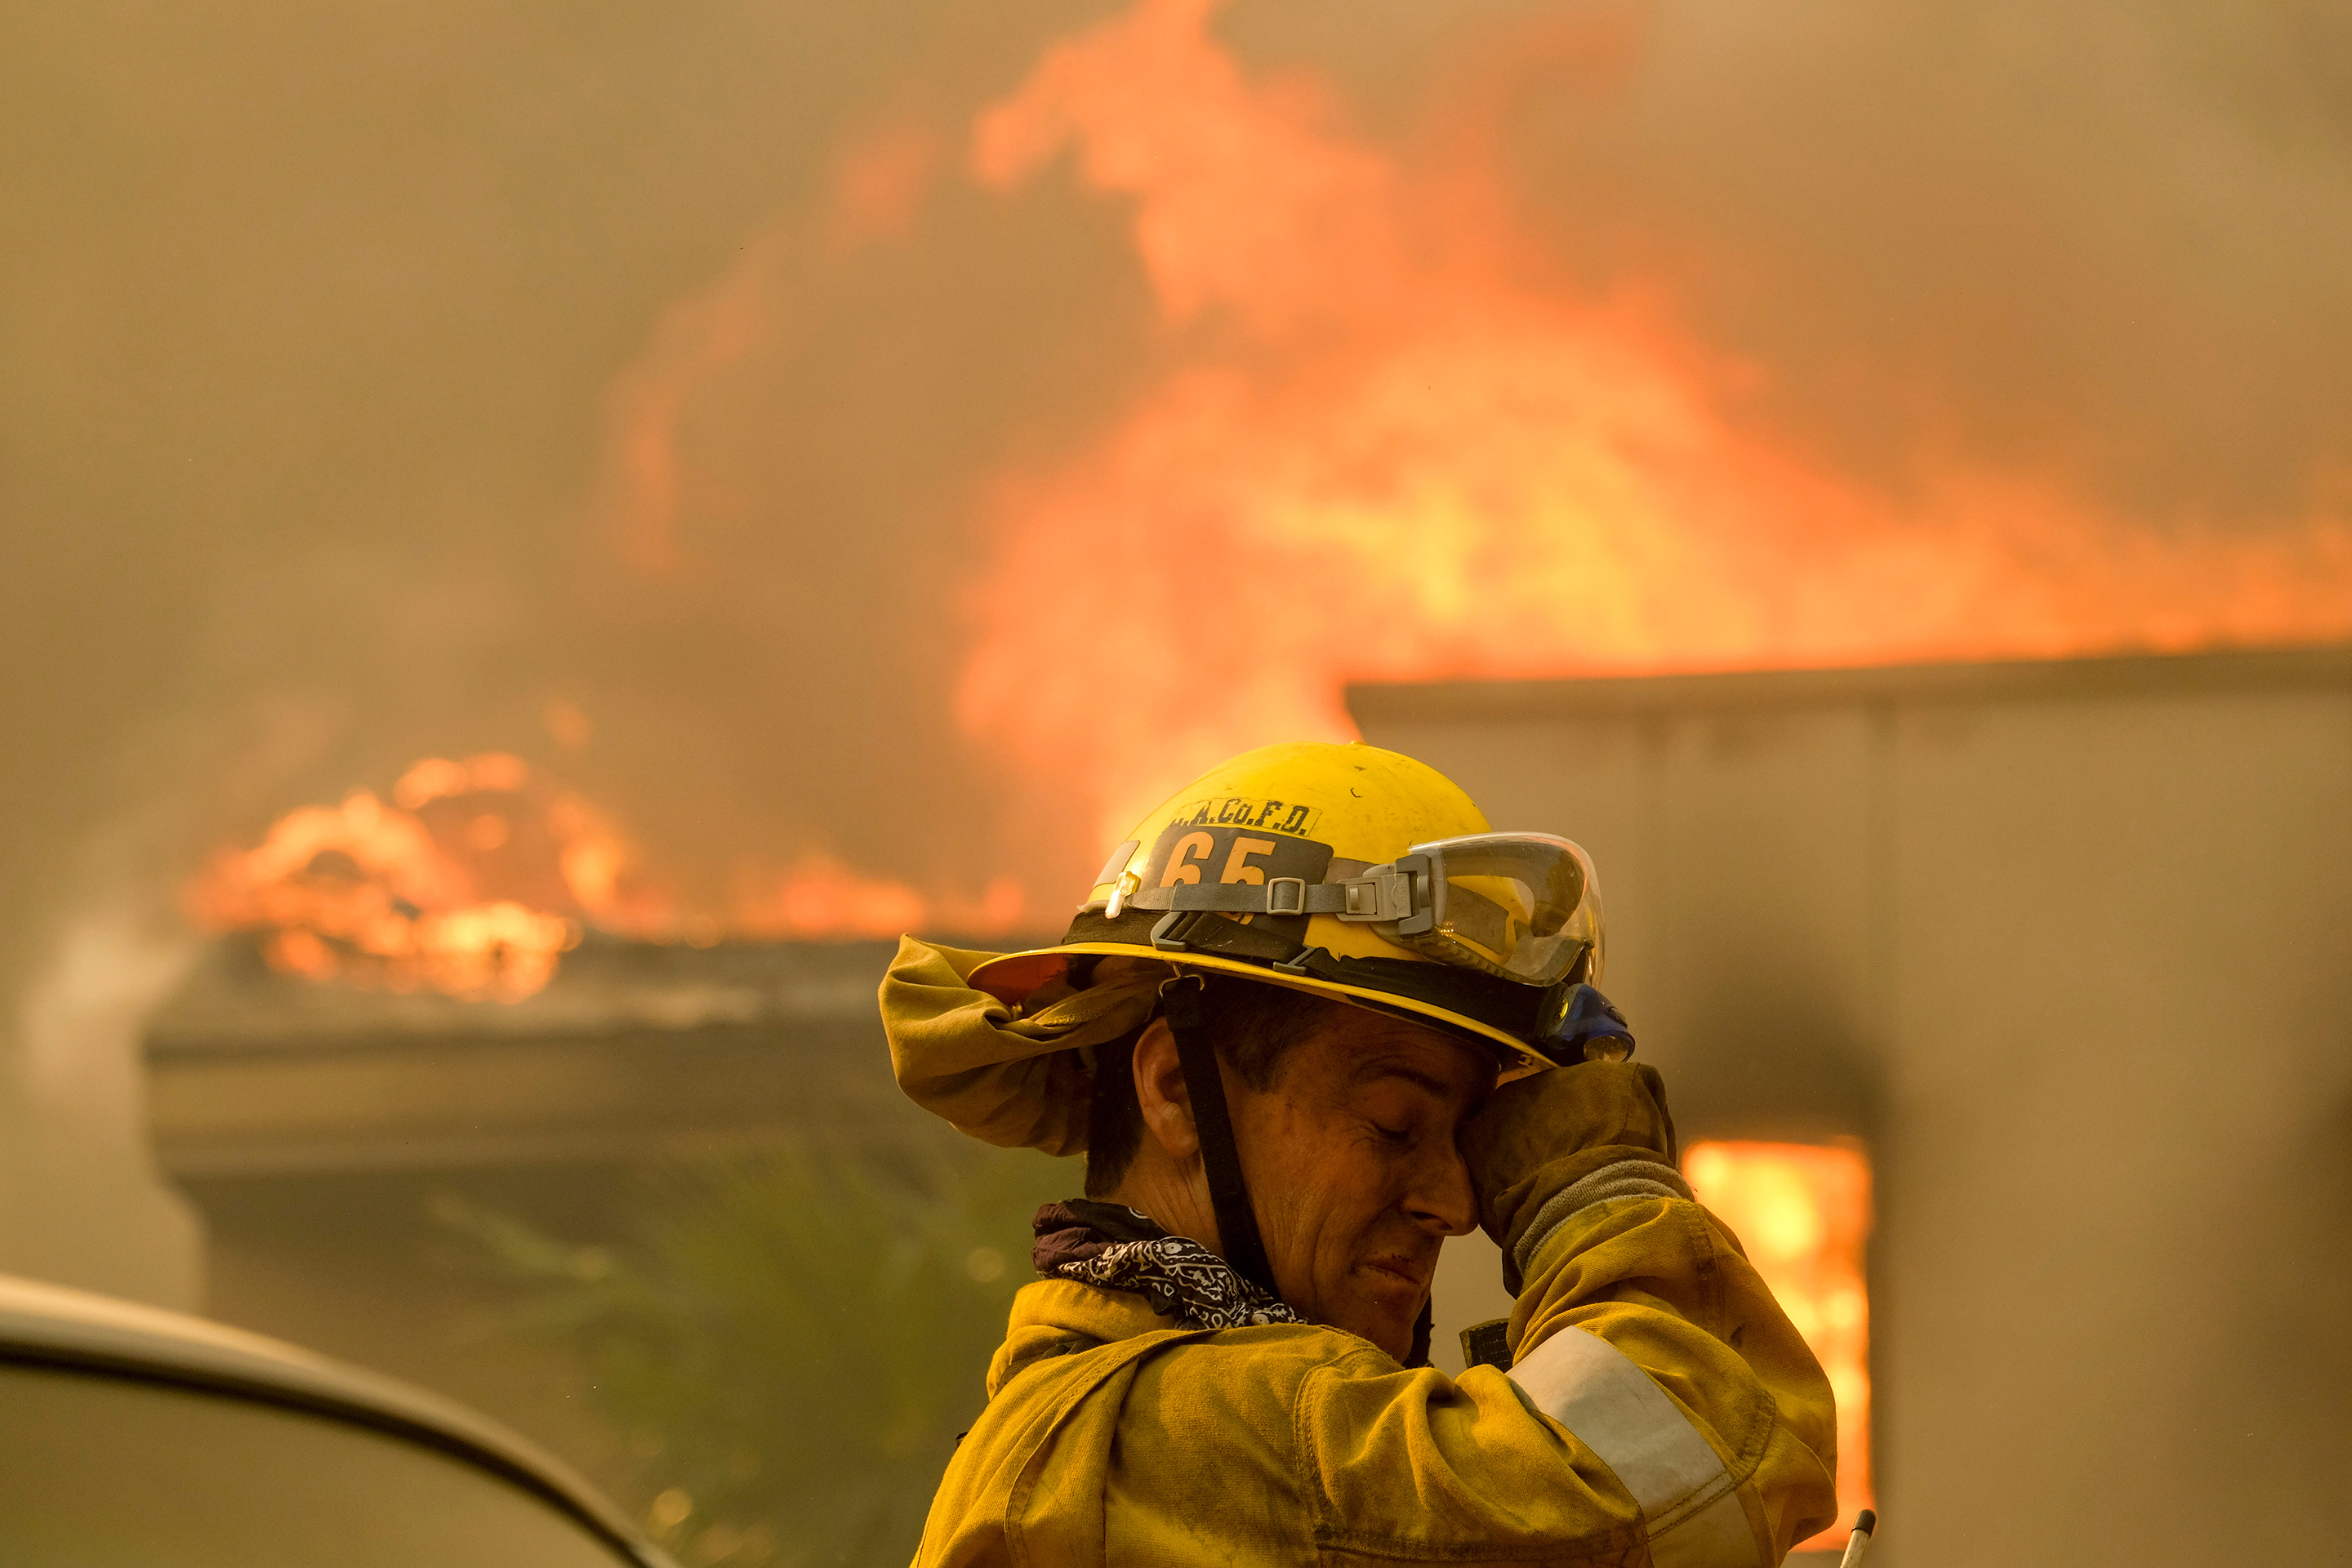 A firefighter keeps watch as the wildfire burns a home near Malibu Lake in Malibu, Calif.